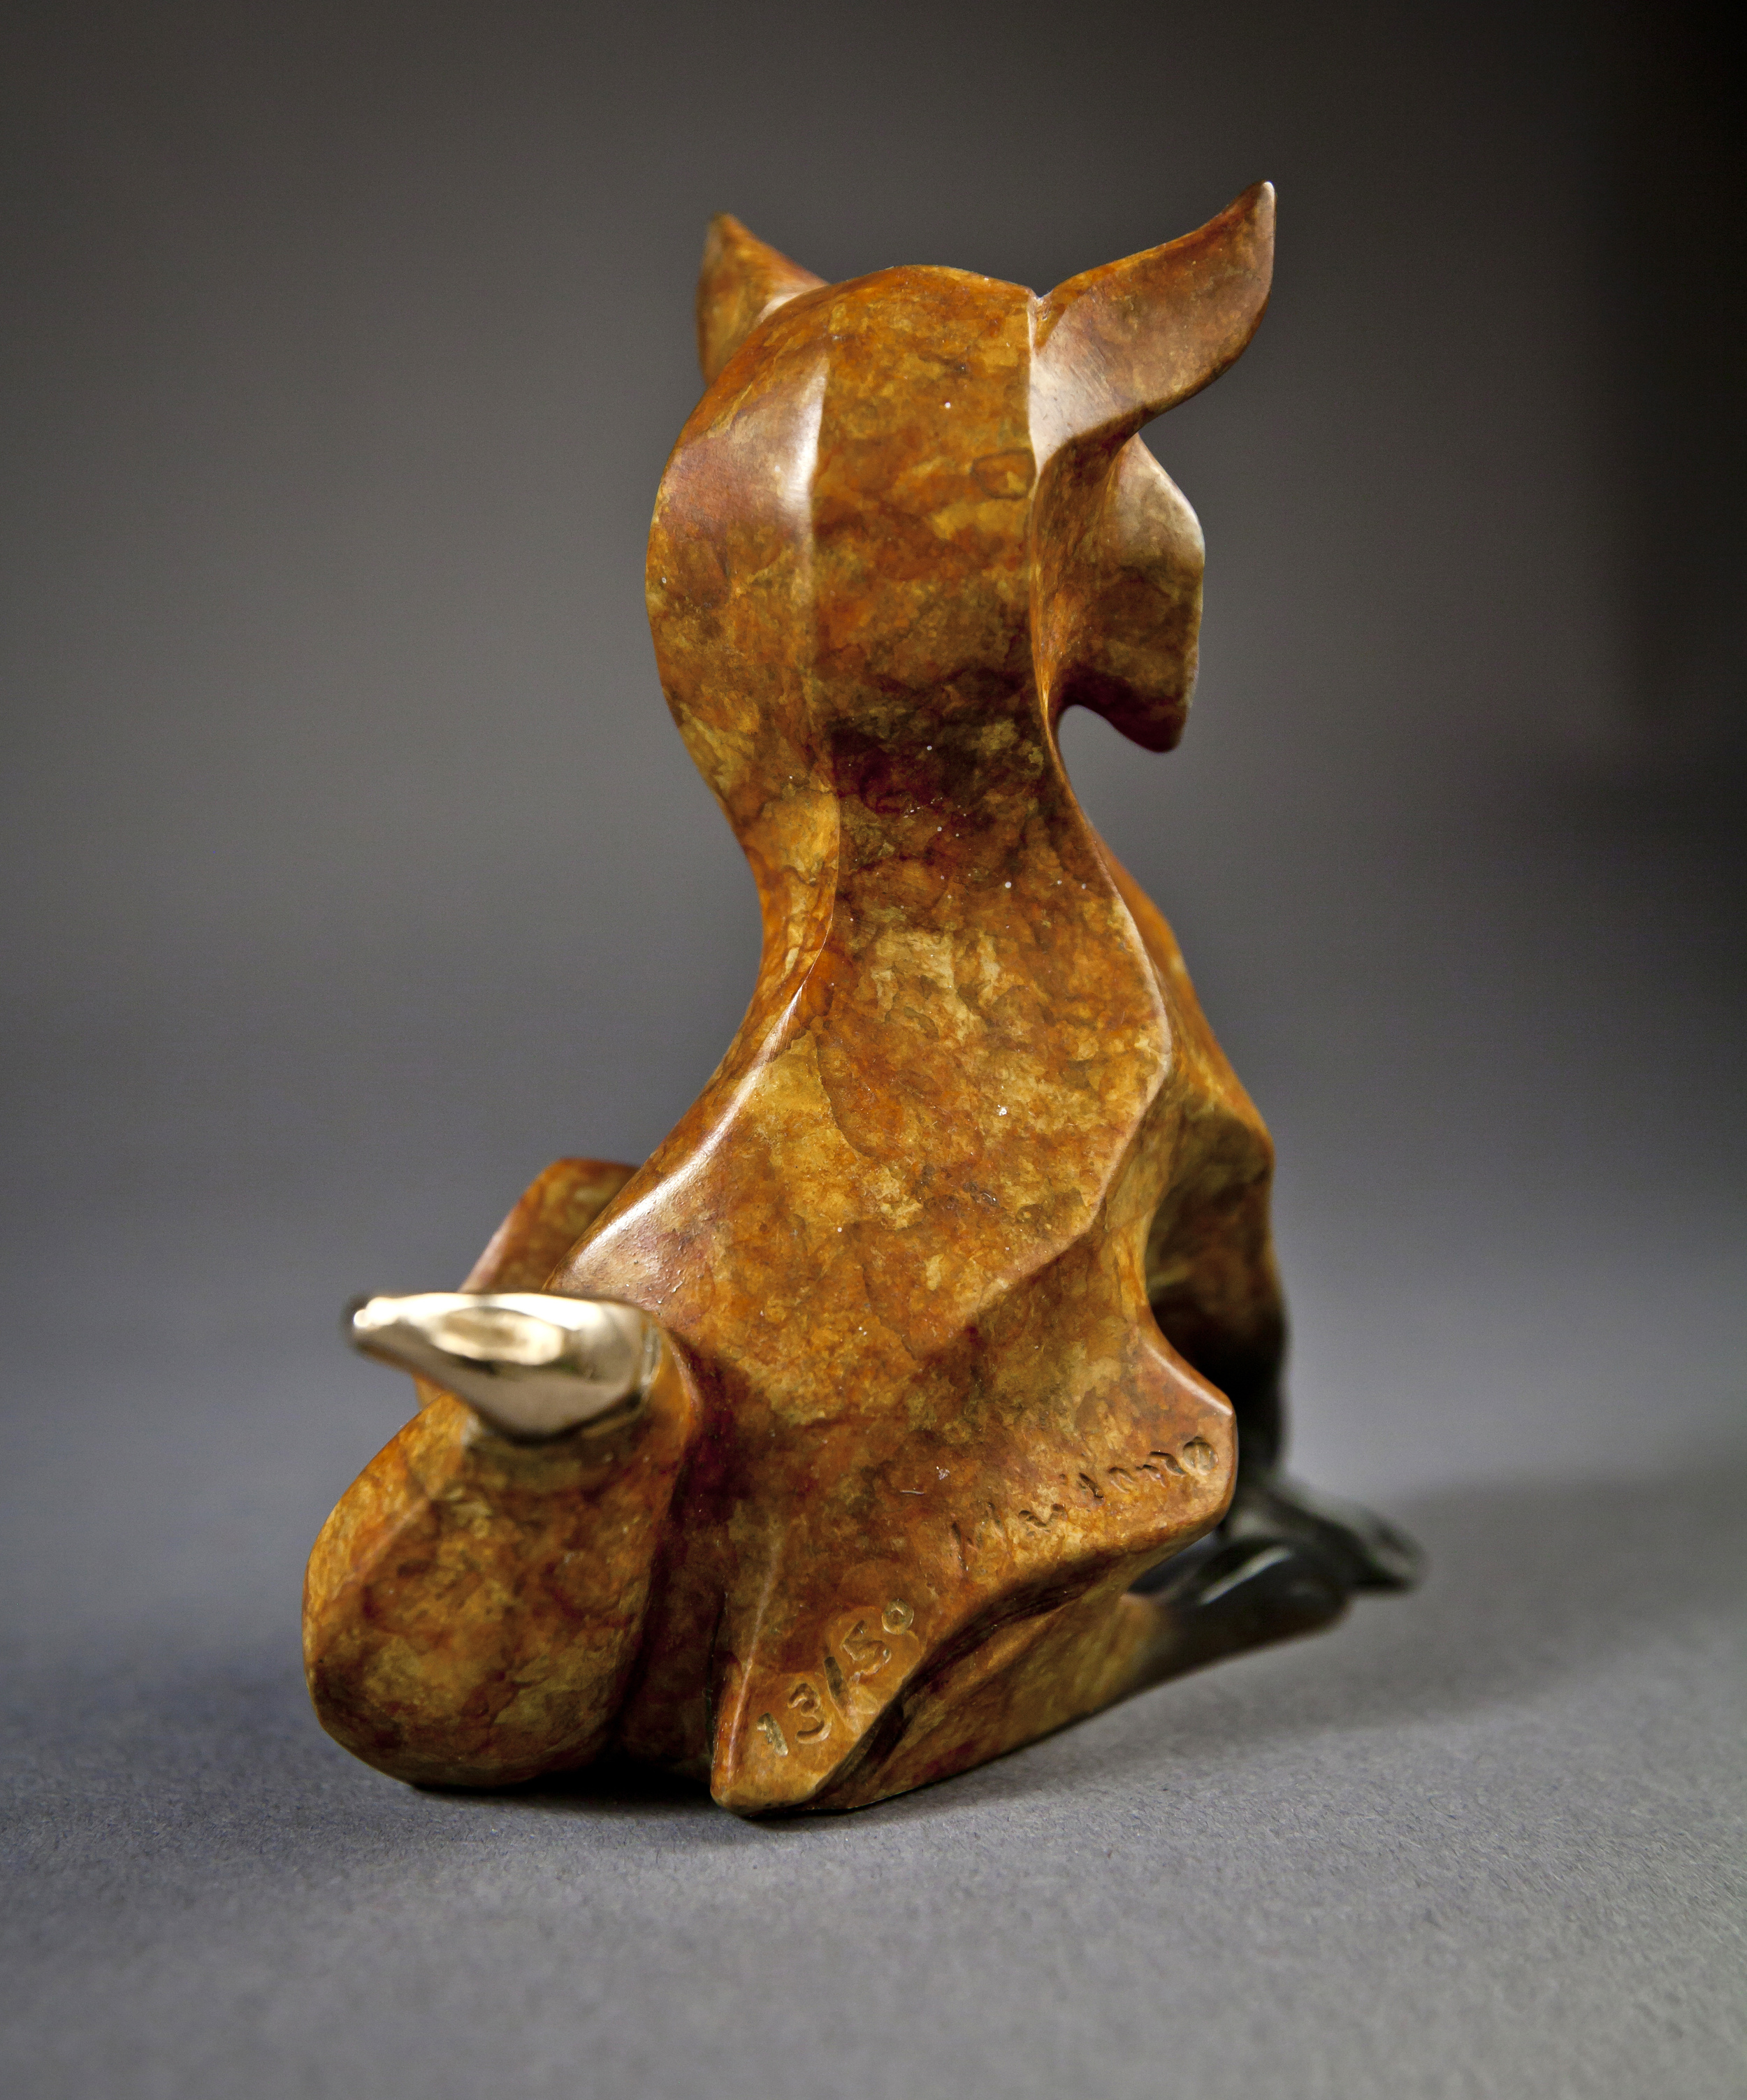 bronze-fox-sculpture-by-john-maisano-4.jpg